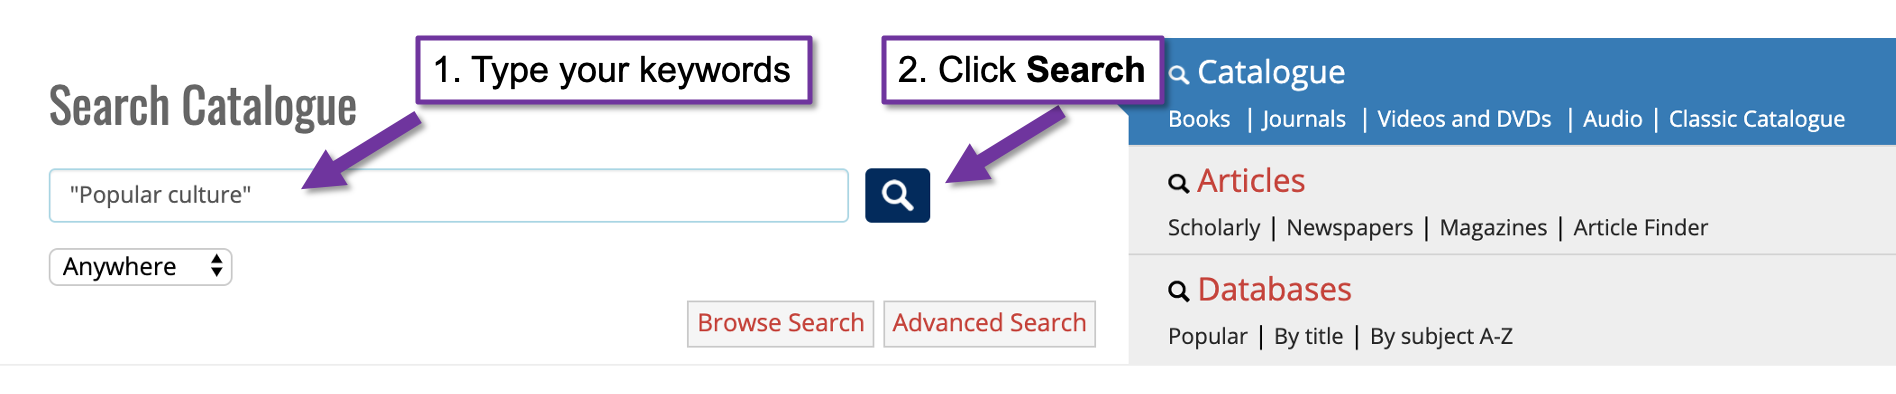 "Screenshot of the catalogue search page with 2 arrows pointing to features on the page. The first arrow is pointing to the search field with the text ""1 type your keywords"". The second arrow is pointing to the search button with the text ""2 click search""."